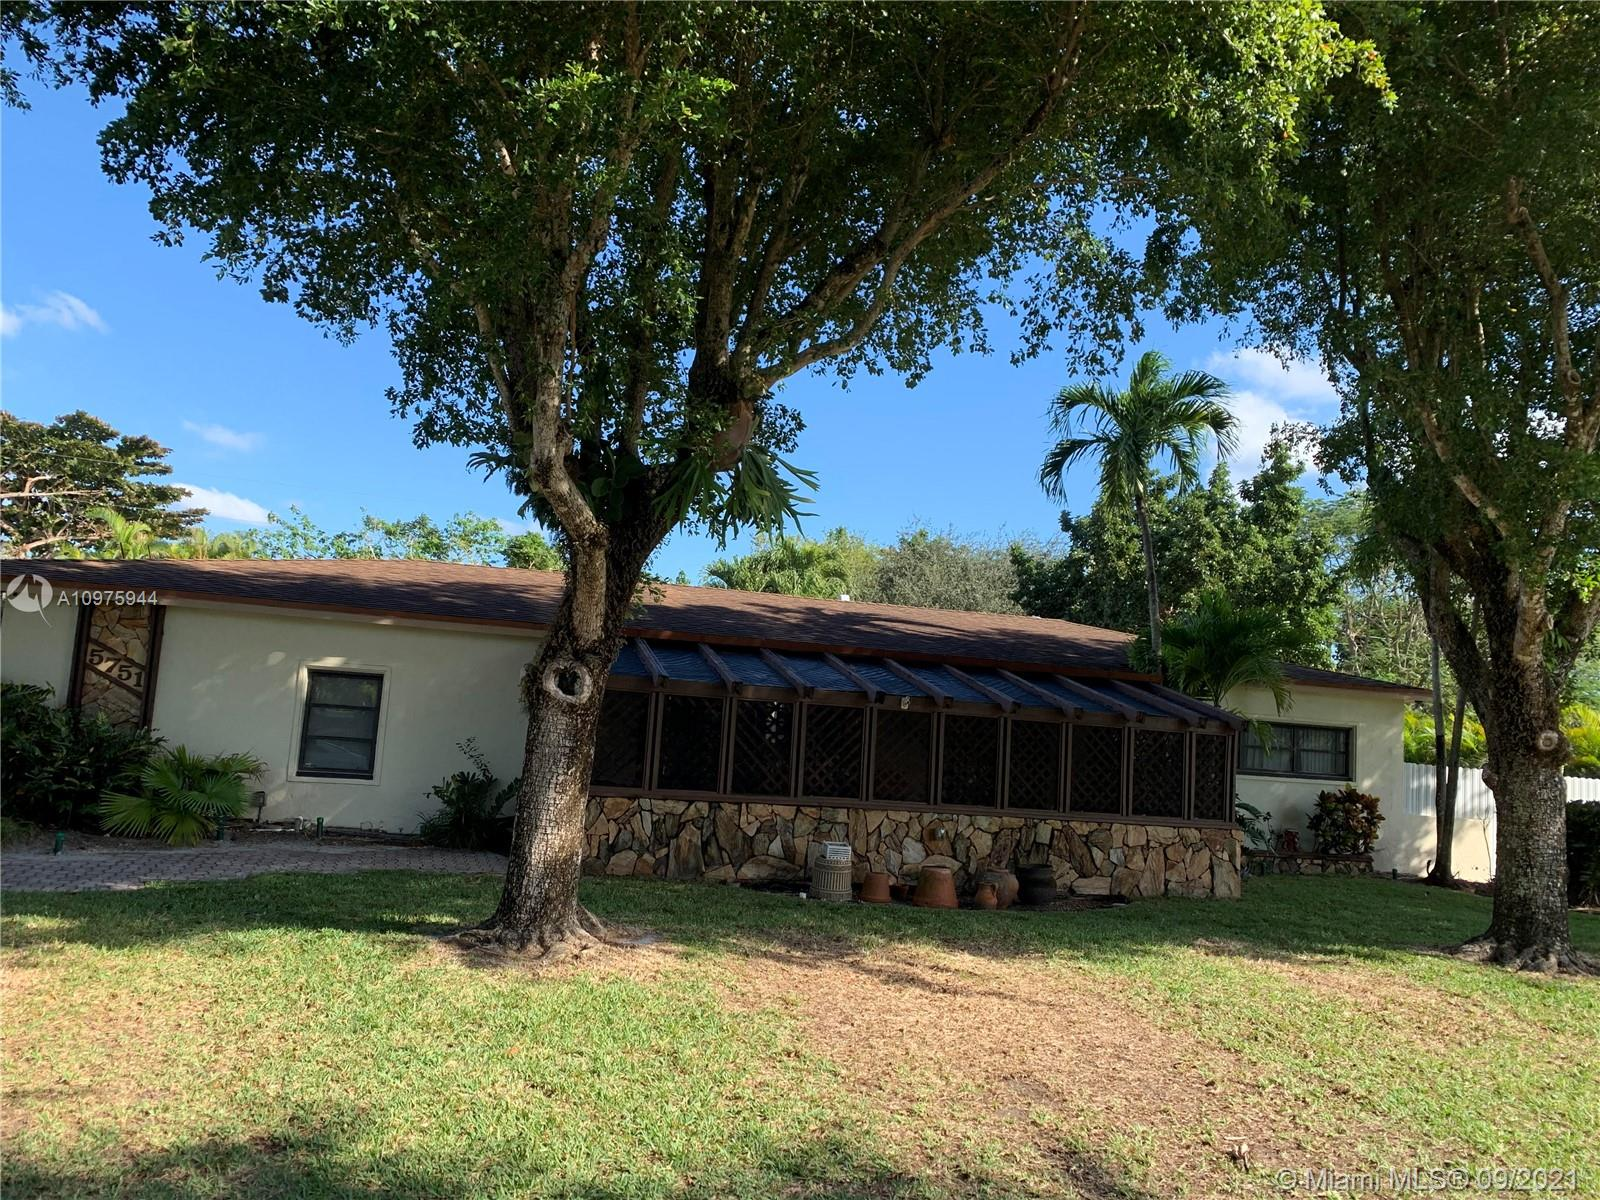 Two homes for the price of one! 4/2 - one house, 3/1 - guest house. Beautiful tropical oasis. Fixer upper in prime area. Excellent investor opportunity!! Sought after S Miami location. Beautiful desirable street. Gorgeous pool patio area excellent for entertaining. Large property room to add on. Won't last! Close to shopping, restaurants, University of Miami, transportation and so much more! Peace, privacy and tranquility. Best deal in area!!!! Easy to show